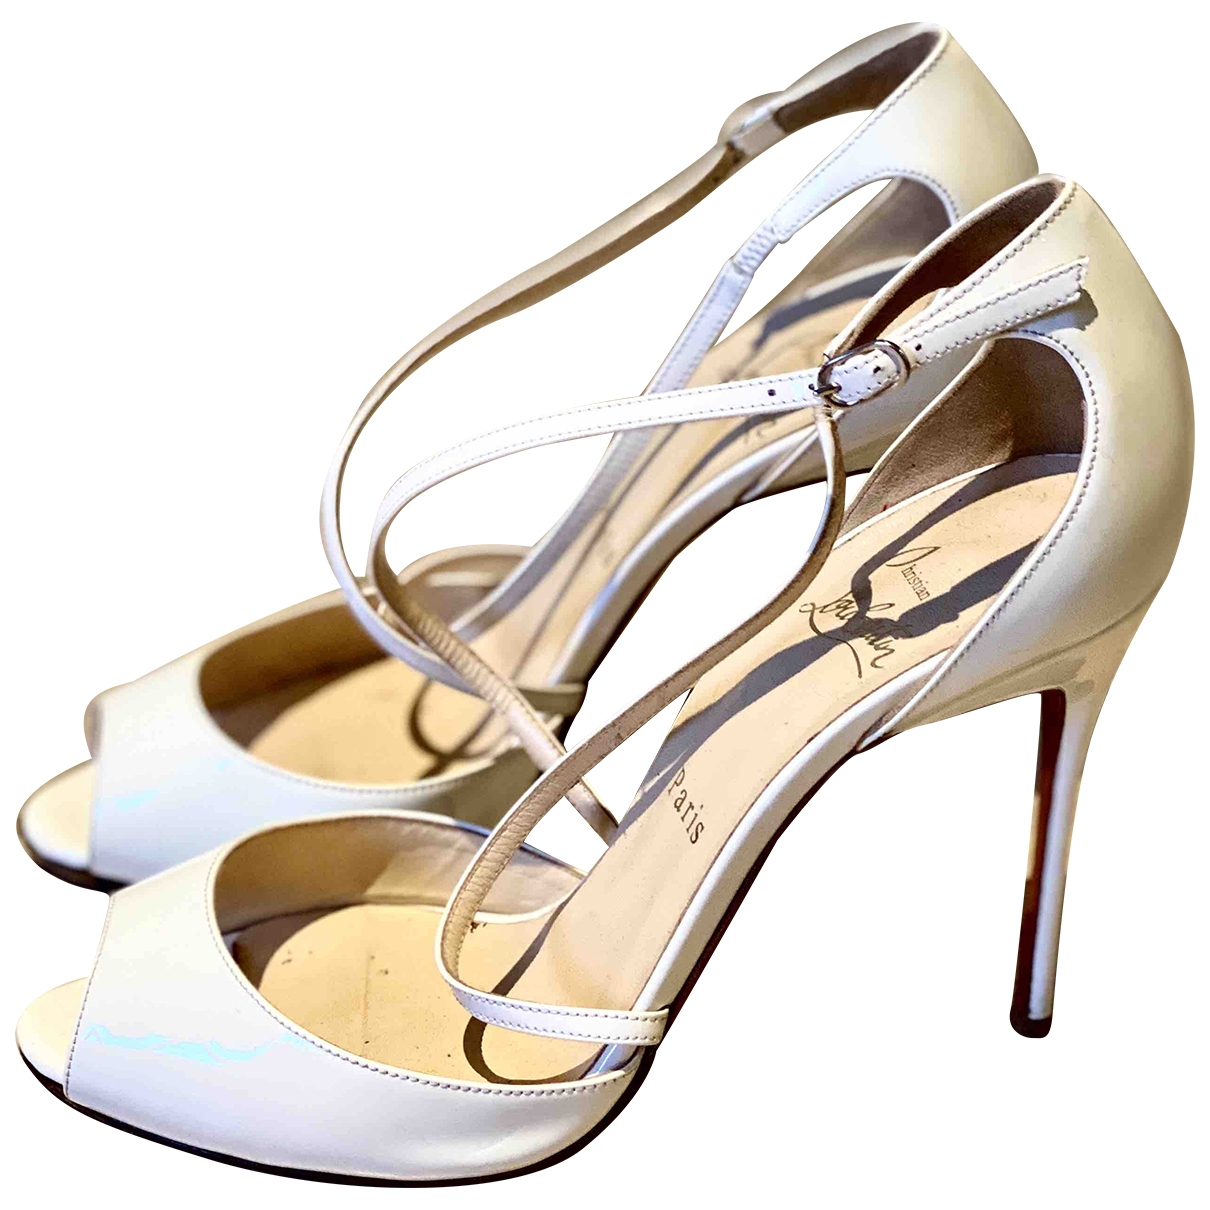 Christian Louboutin \N White Patent leather Sandals for Women 39 EU